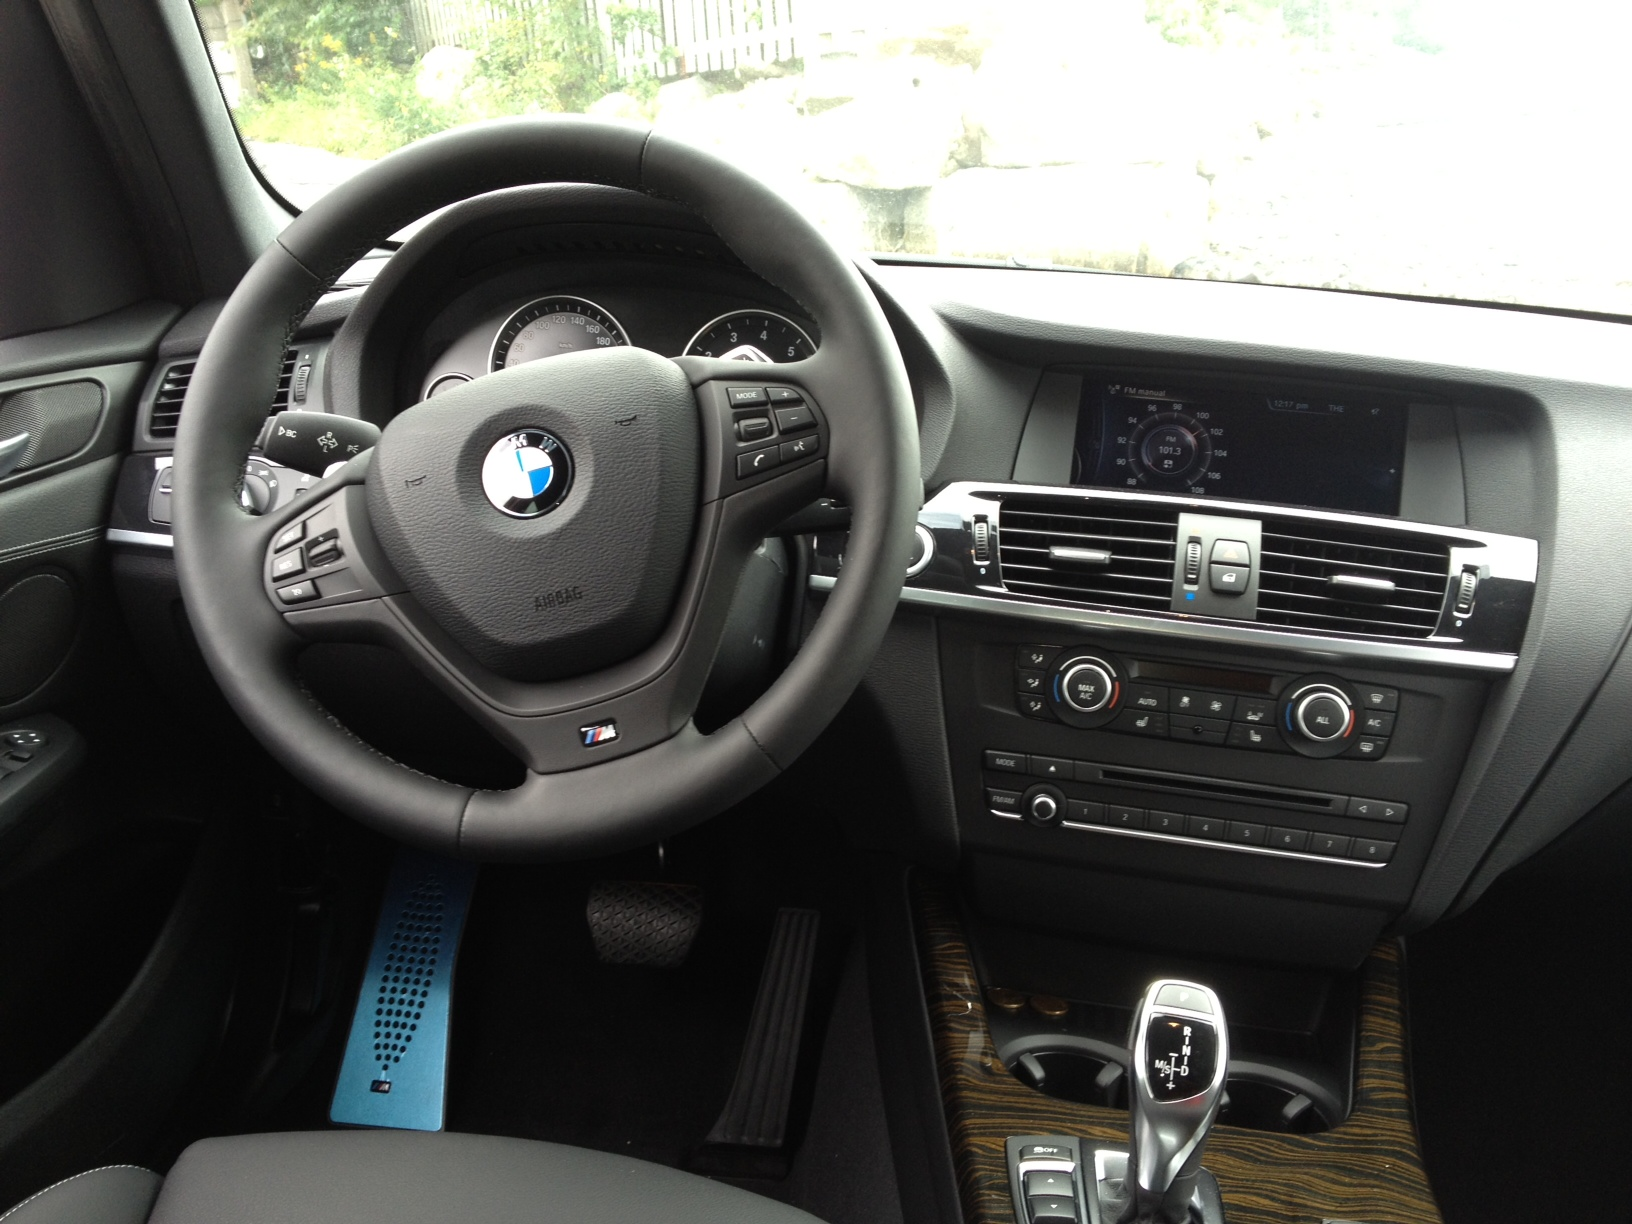 The Layout Is Typically BMW Meaning It Conservative And Classy Soft Touch Materials Can Be Found Just About Everywhere Feel Top Notch